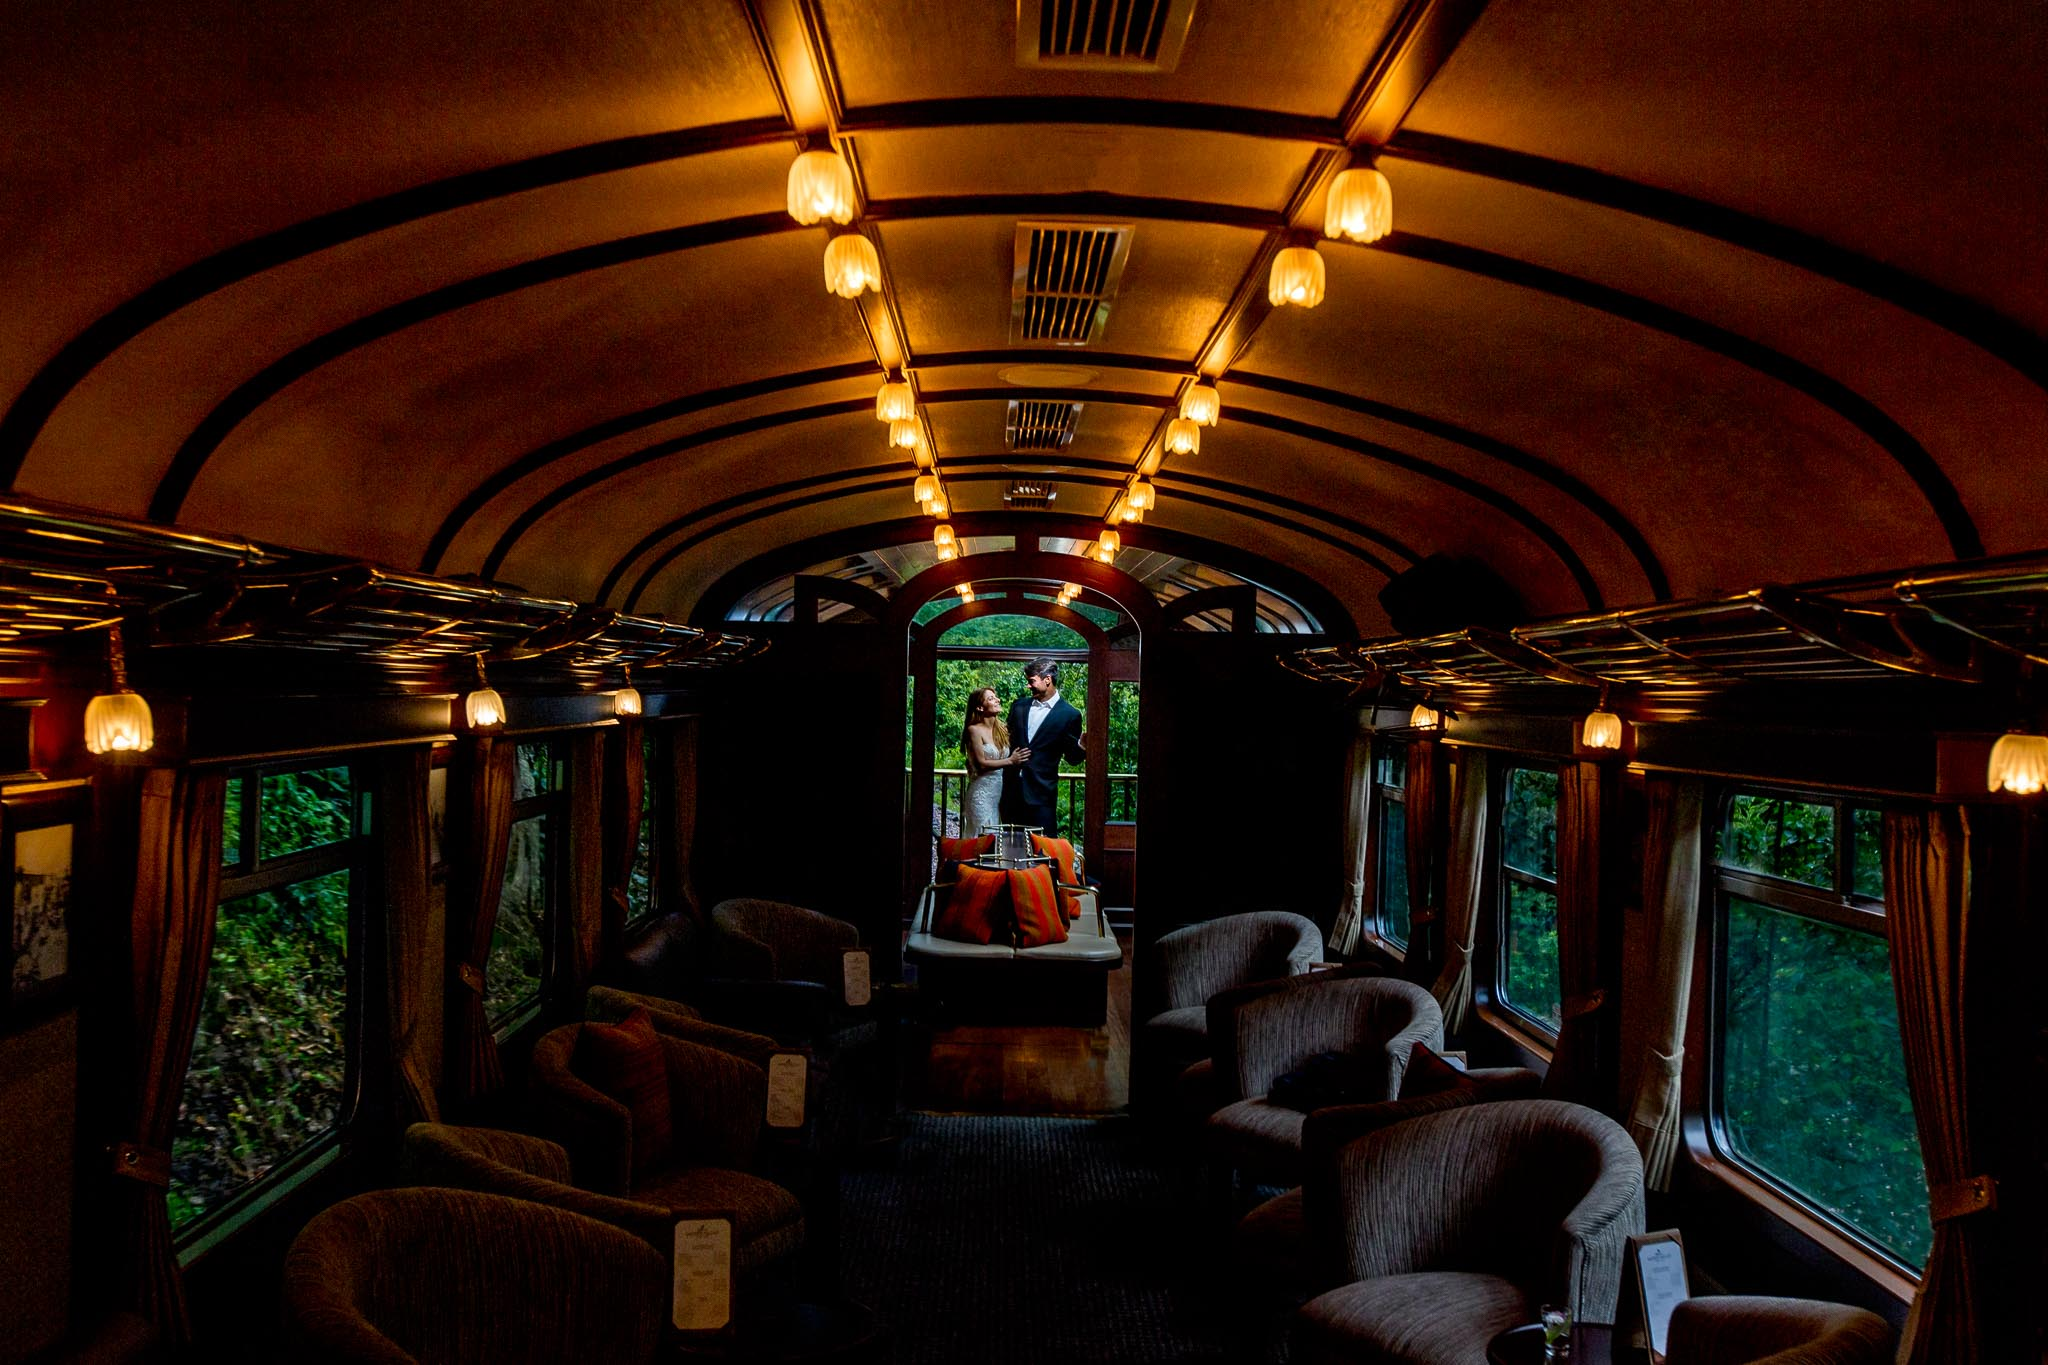 Peru Wedding on train to Macchu Pichu